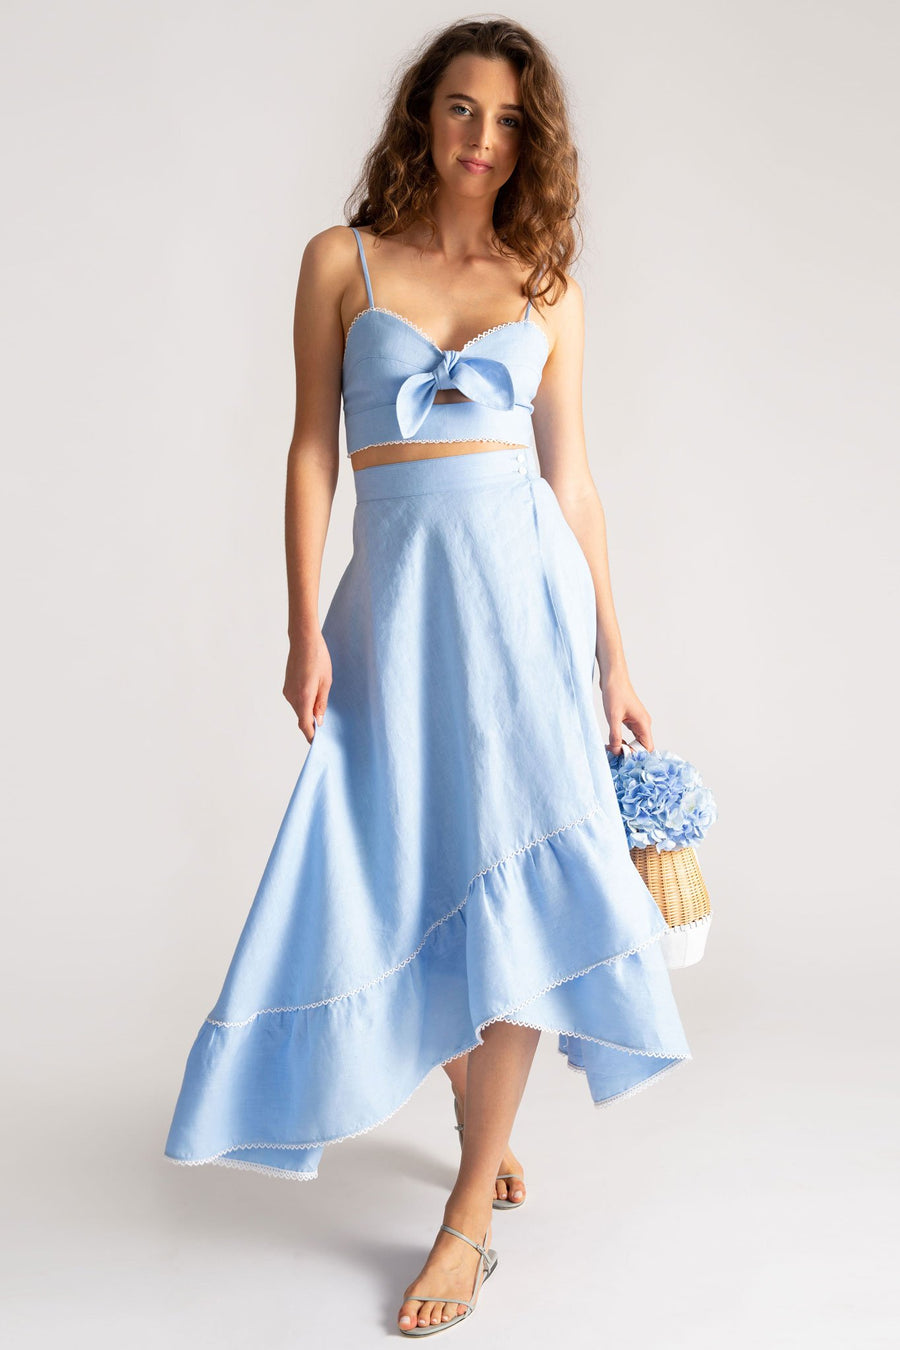 This is a photo of a woman wearing a light blue linen crop top and wrap skirt. She looks over one shoulder and holds a straw bag with blue flowers in it.